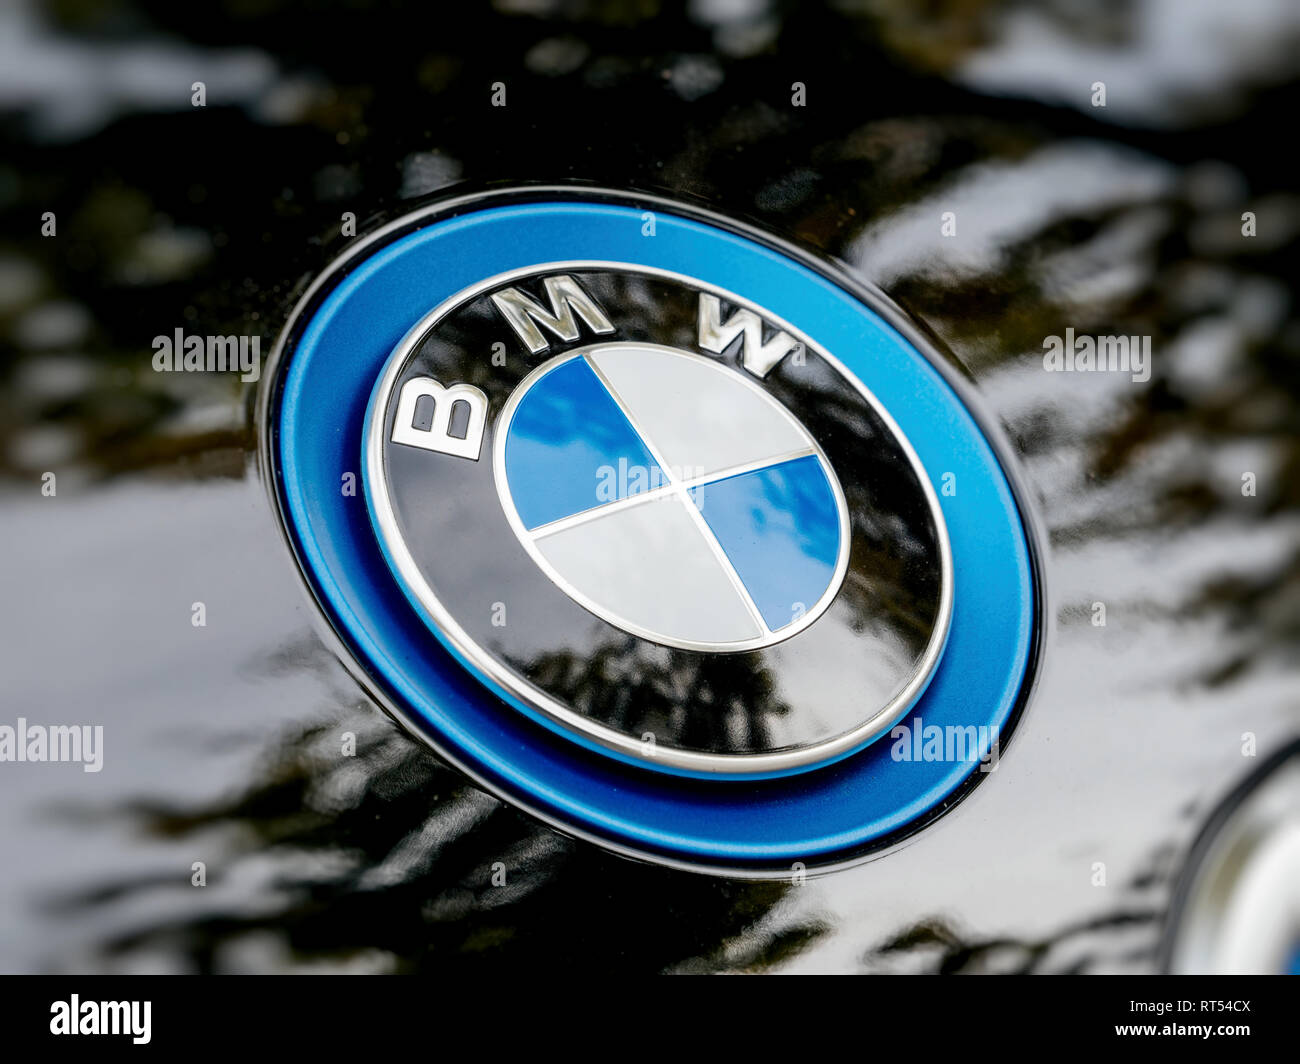 STRASBOURG, FRANCE - MAY 30, 2017: Side view of blue BMW logotype on the electric i1 limousine  - Stock Image